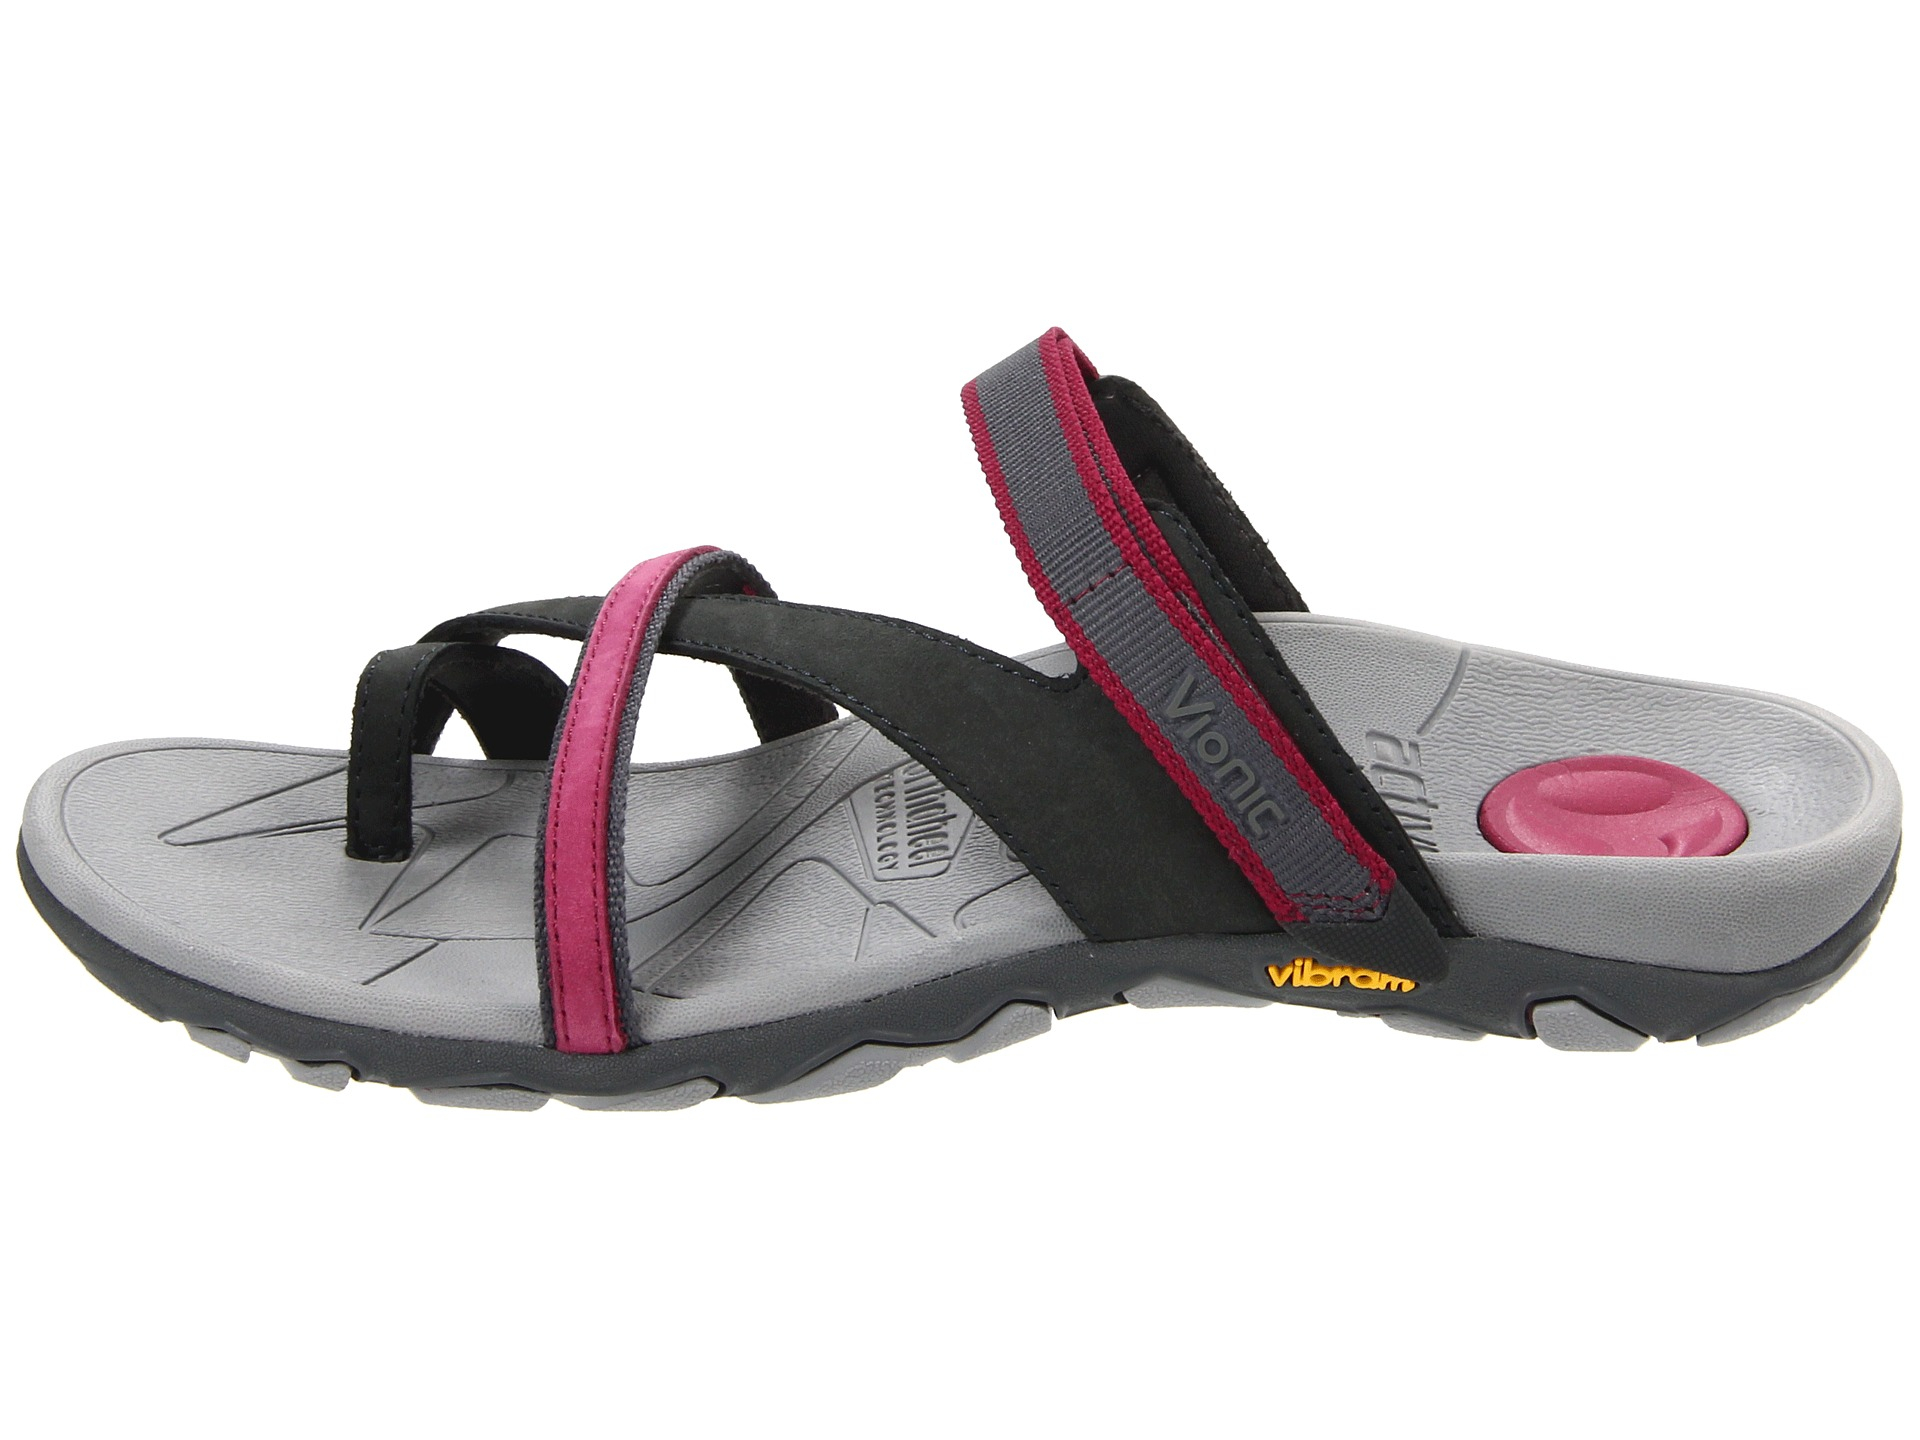 090ef96762f8 Lyst - Vionic Mojave ™ Sport Recovery Toepost Sandal in Gray